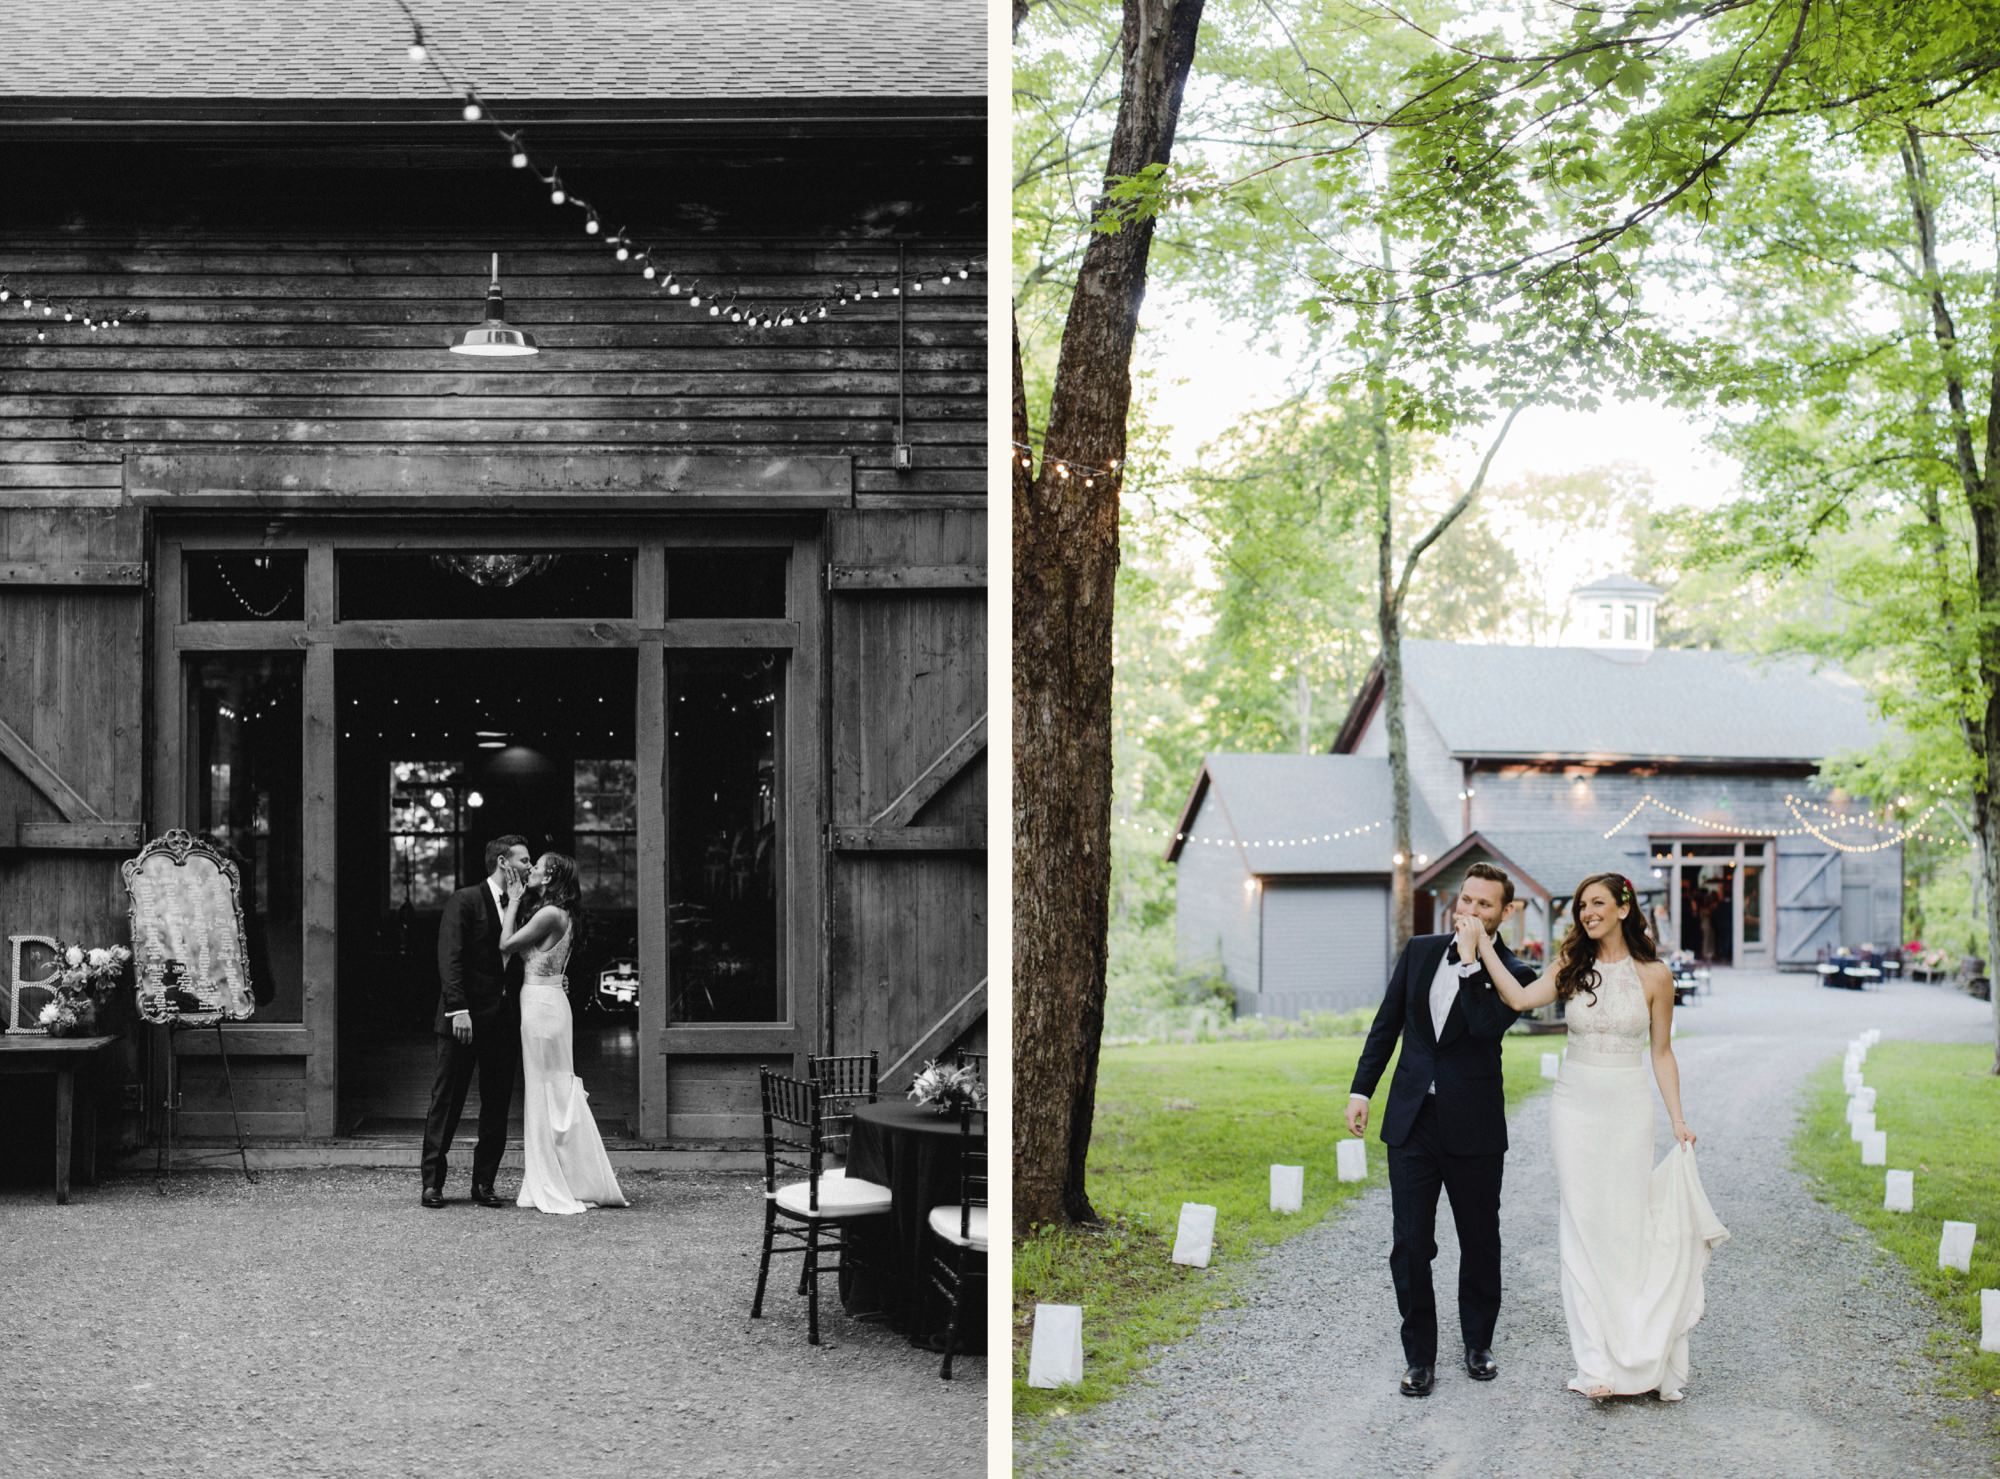 Newlyweds at The Carriage Barn at Roxbury Barn Estate in the Catskills New York